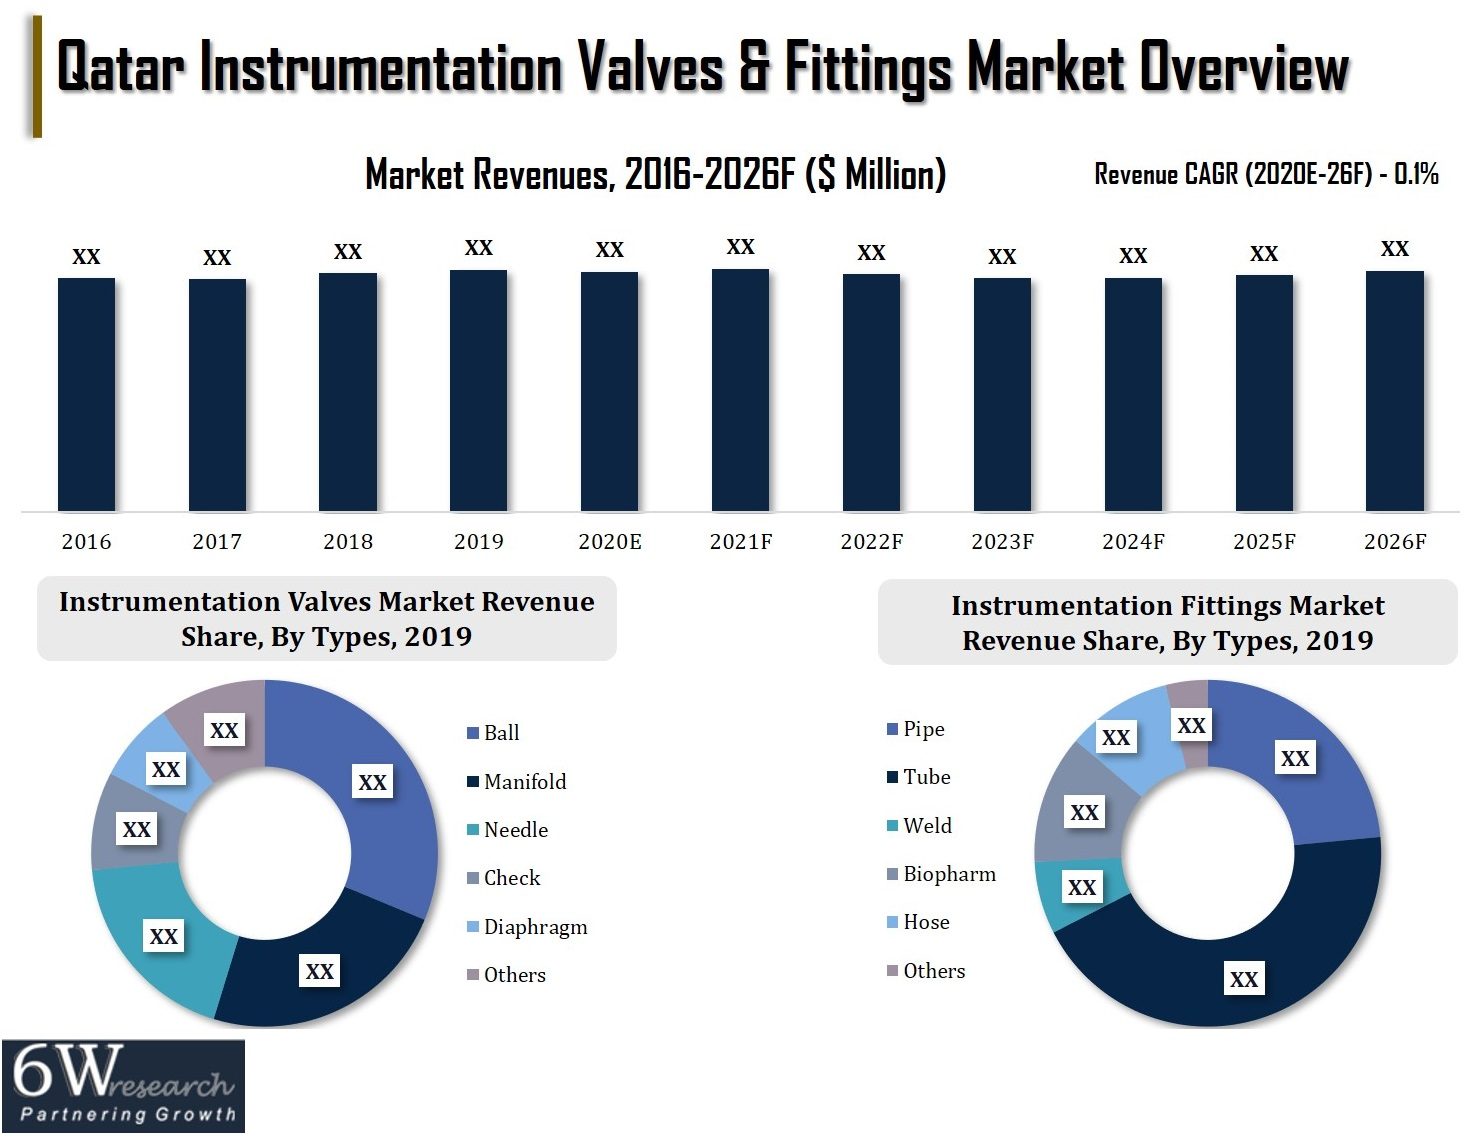 Qatar Instrumentation Valves & Fittings Market